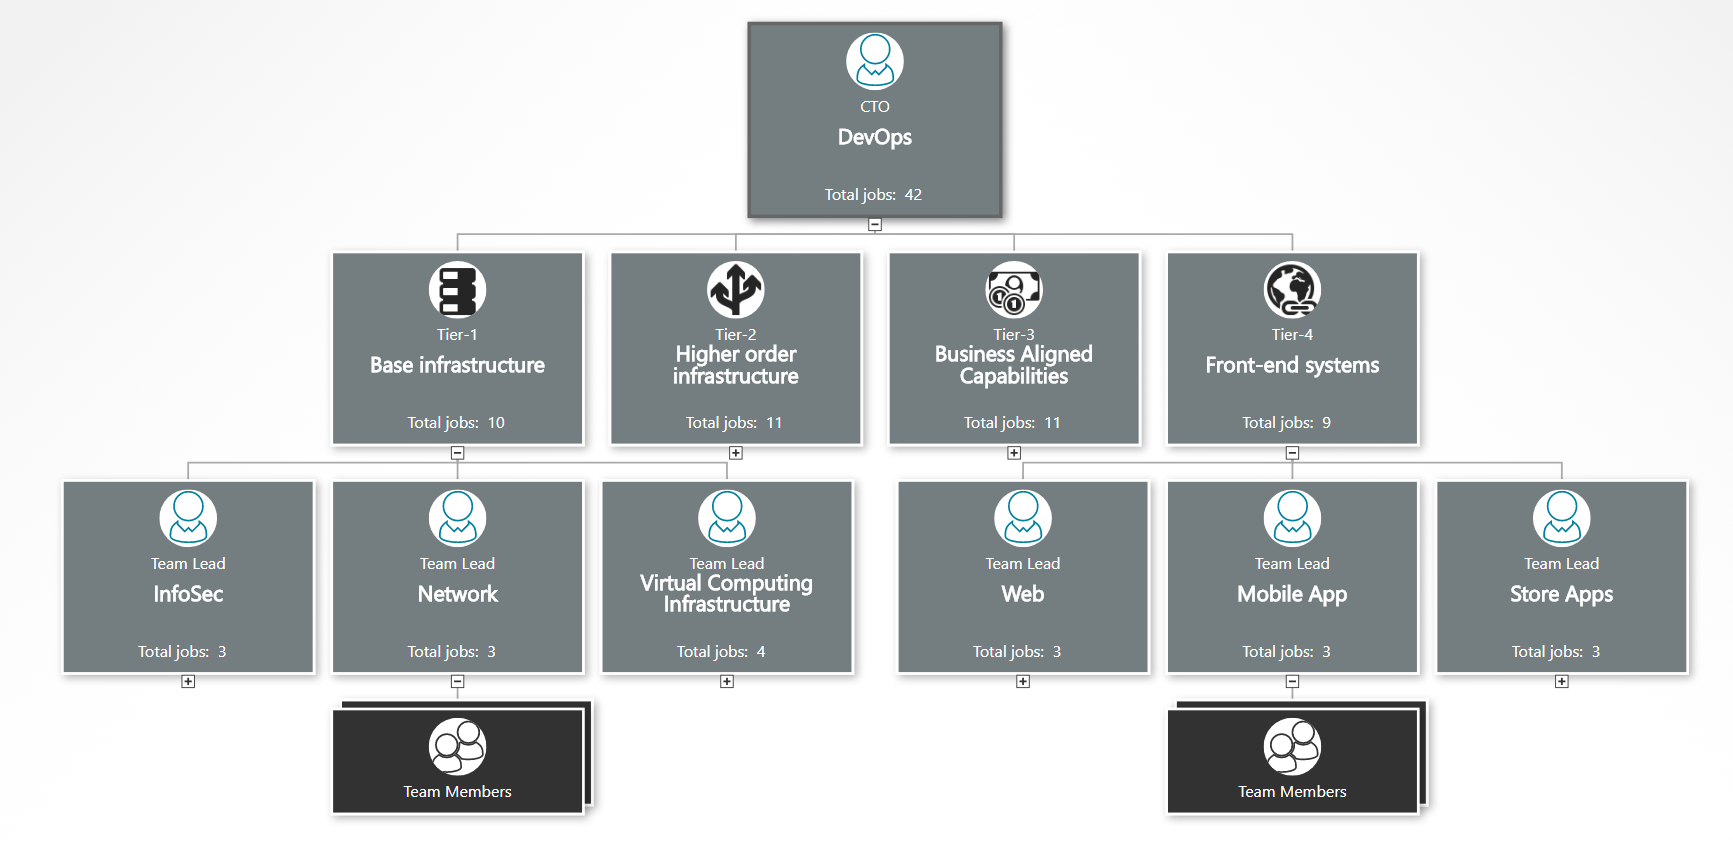 DevOps IT org chart example